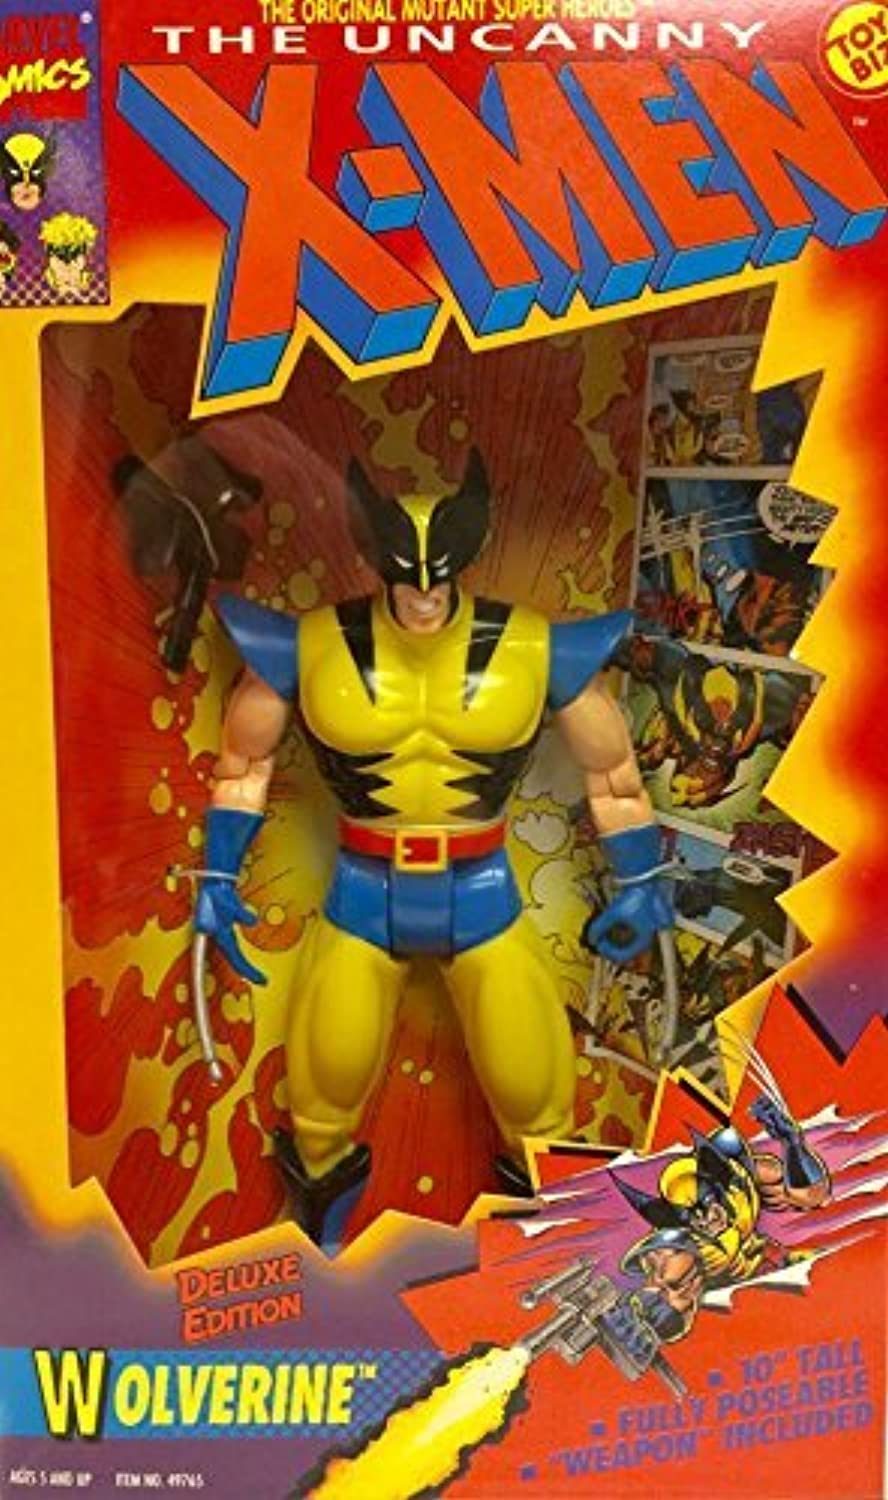 The Uncanny X Men 10 Inch Deluxe Edition Wolverine Figure by X Men